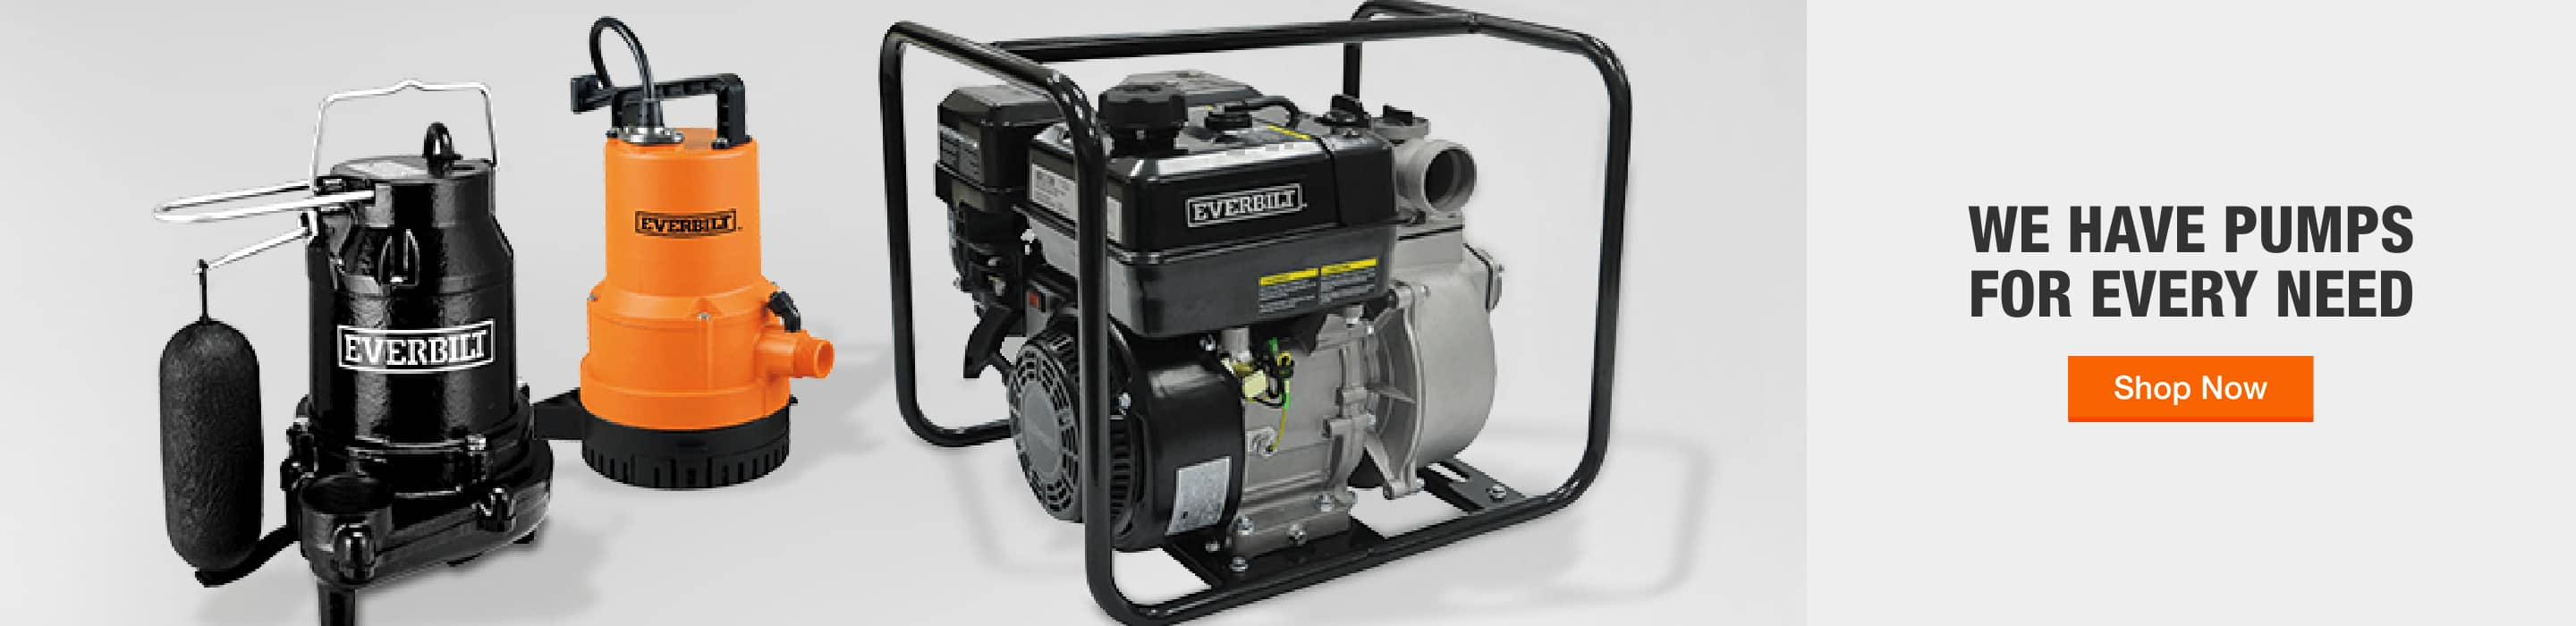 We have pumps for every need